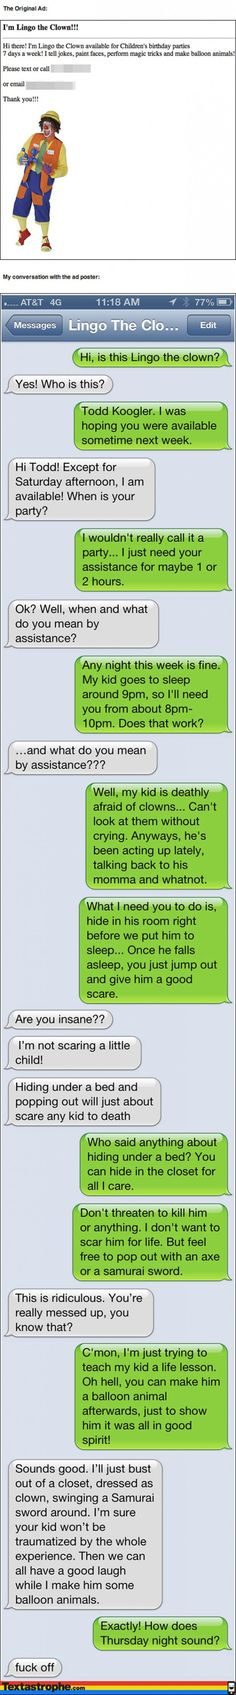 This is hilarious. It's a good thing I don't have kids.